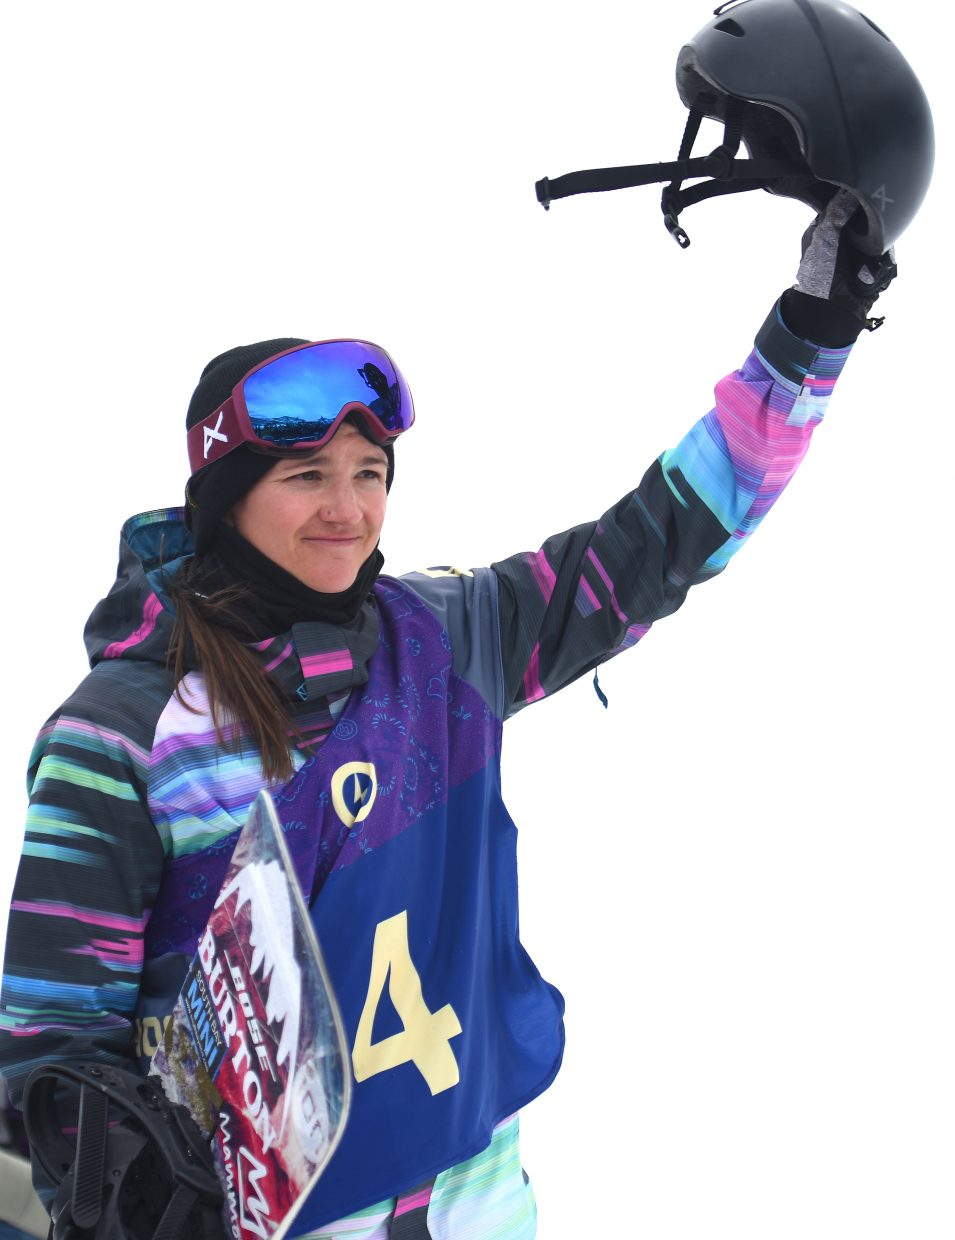 Kelly Clark salutes the crowd at the U.S. Open half-pipe finals on Saturday in Vail.